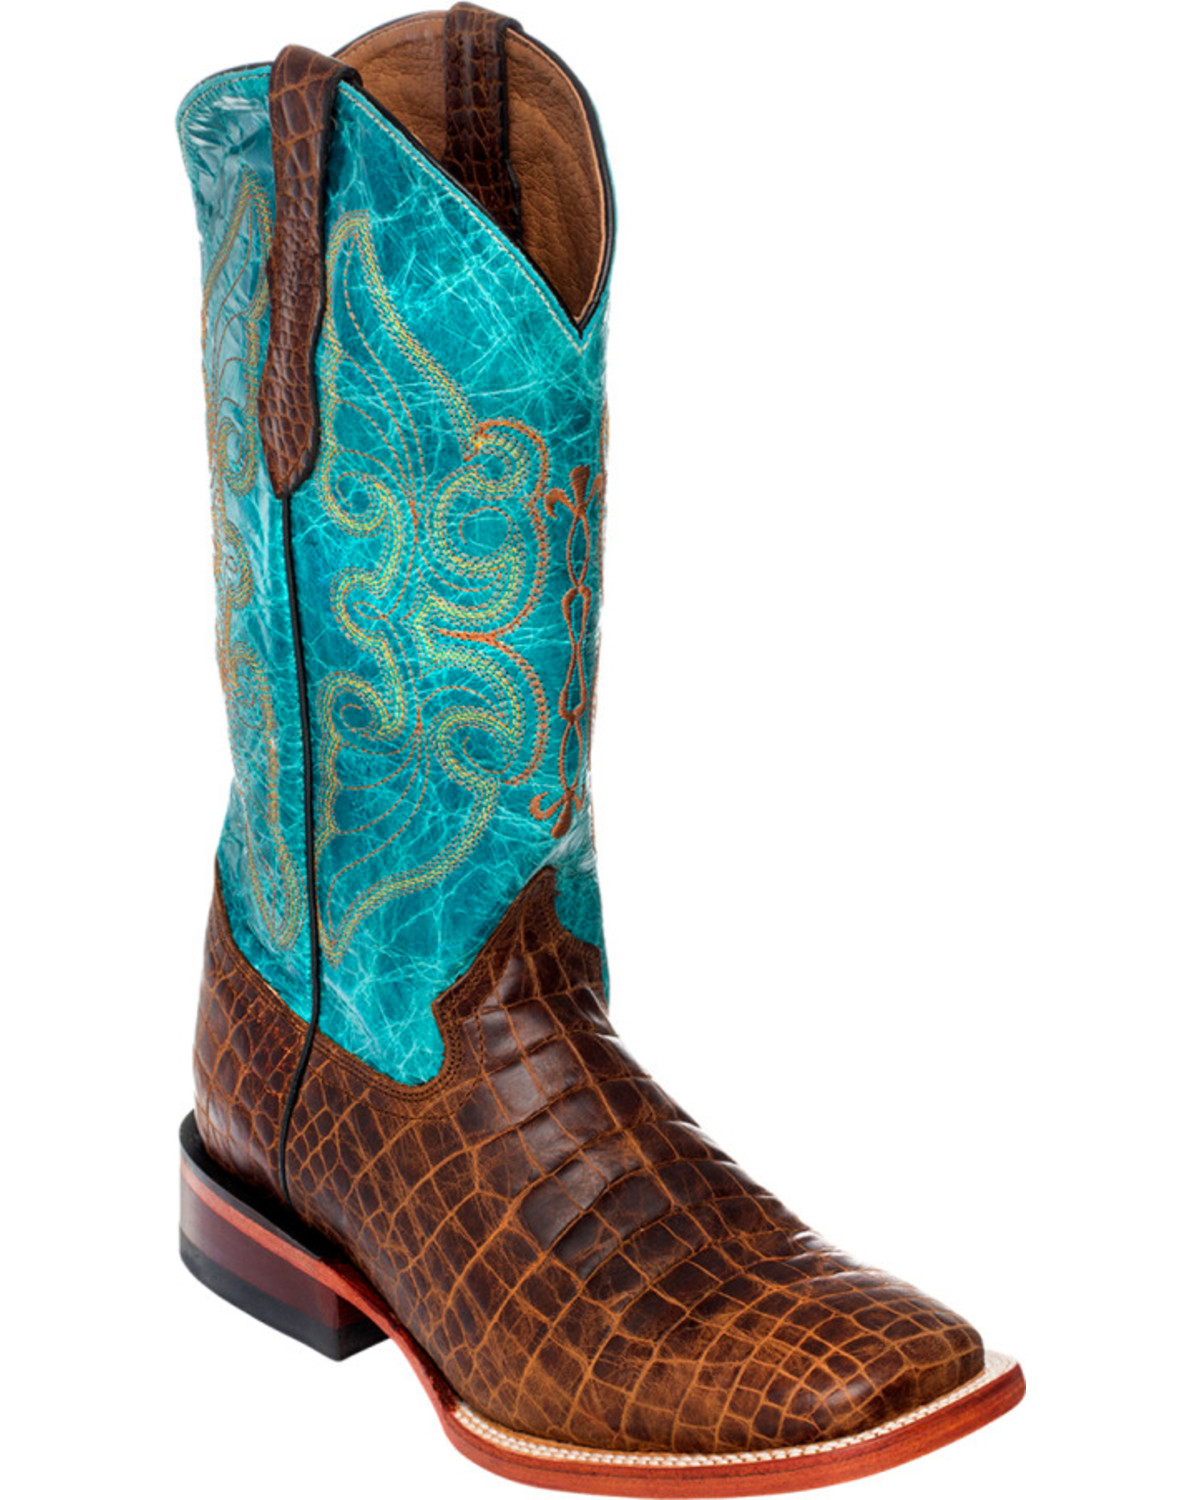 Ferrini Women S Belly Print Cowgirl Boots Square Toe